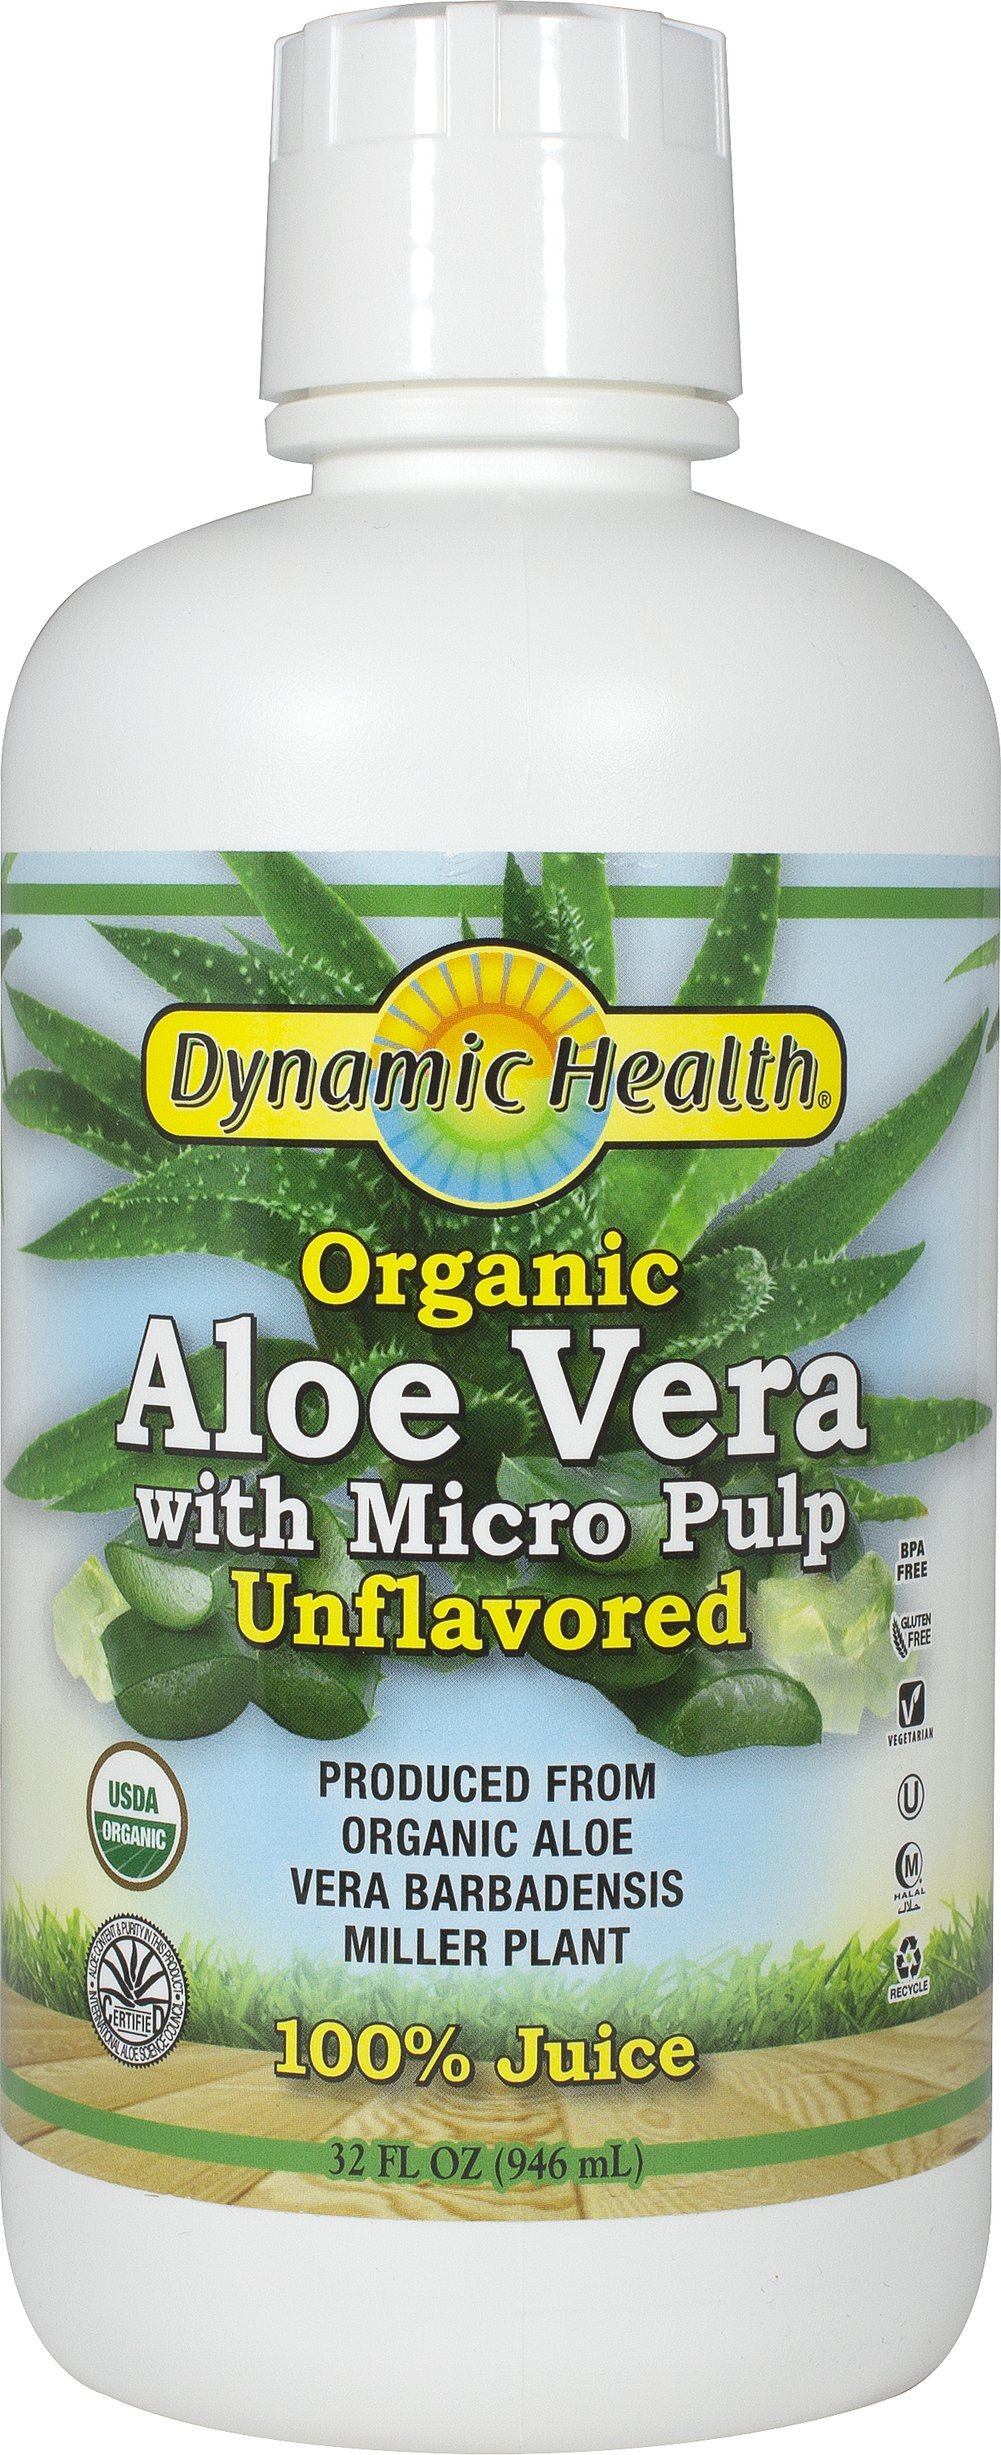 Organic Aloe Vera Juice W/ Micro Pulp Unflavored <strong></strong><p><strong>From the Manufacturer: </strong></p><p>Organic Aloe Vera Juice with Micro Pulp, produced from Organic Aloe Barbadensis Miller plants.</p><p>• Contains essential bioactive ingredients such as Polysaccharides.</p><p>• Natural source for:  Vitamins, Amino Acids, Enzymes, Minerals & Trace Elements</p> 32 oz Liquid  $6.49